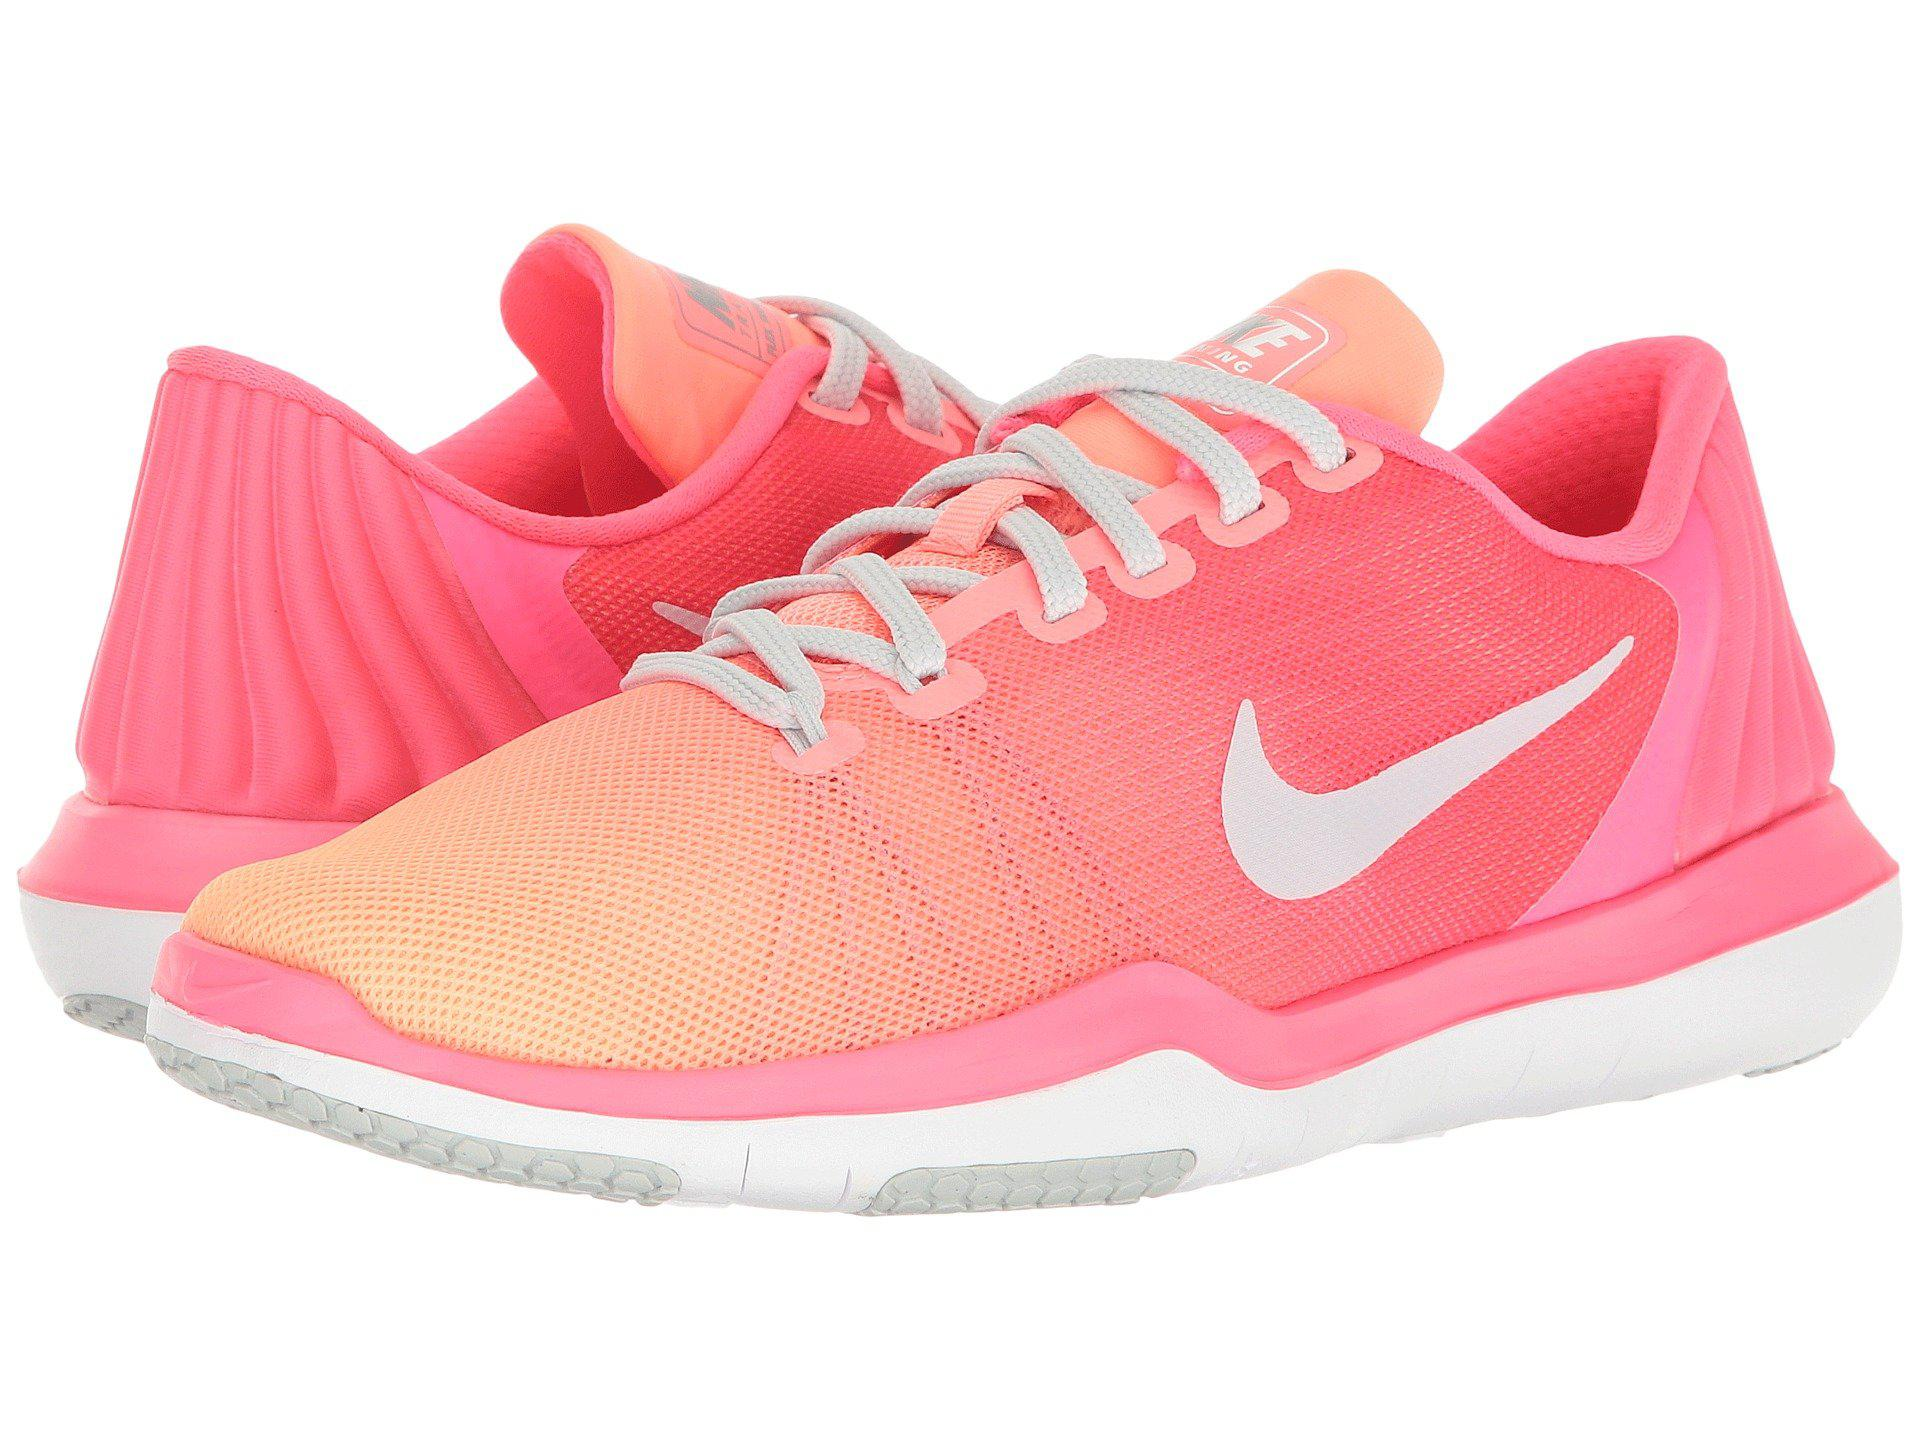 0670e7916ee21 Lyst - Nike Flex Supreme Tr 5 Training Shoe in Pink